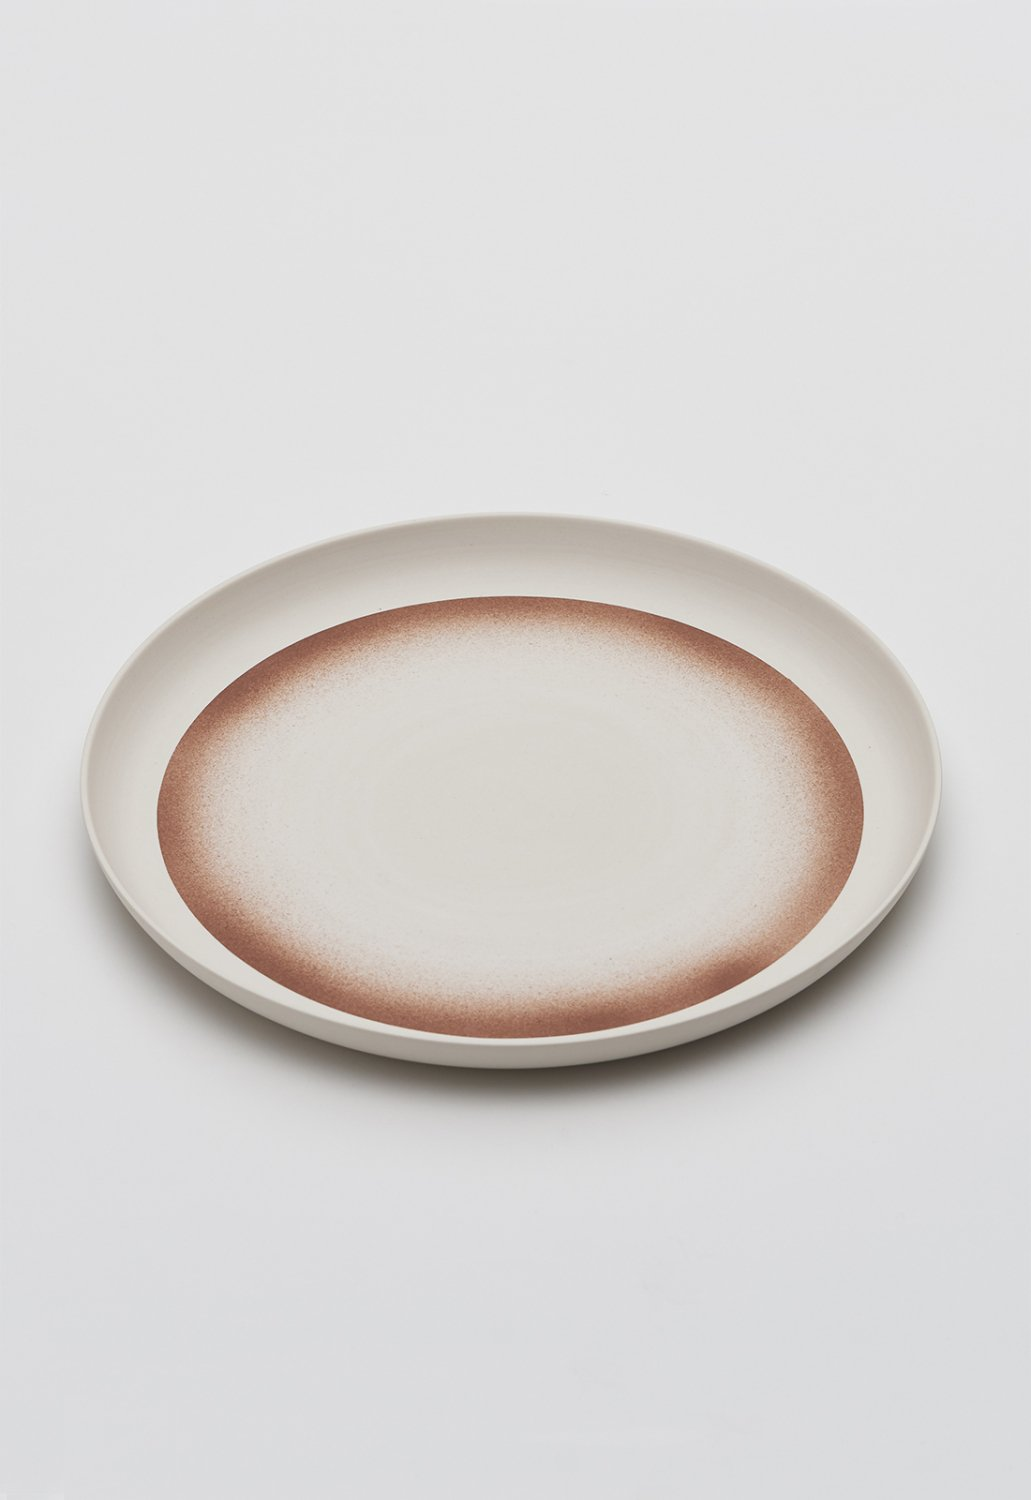 Kirstie van Noort Plate 250 -Spray Color